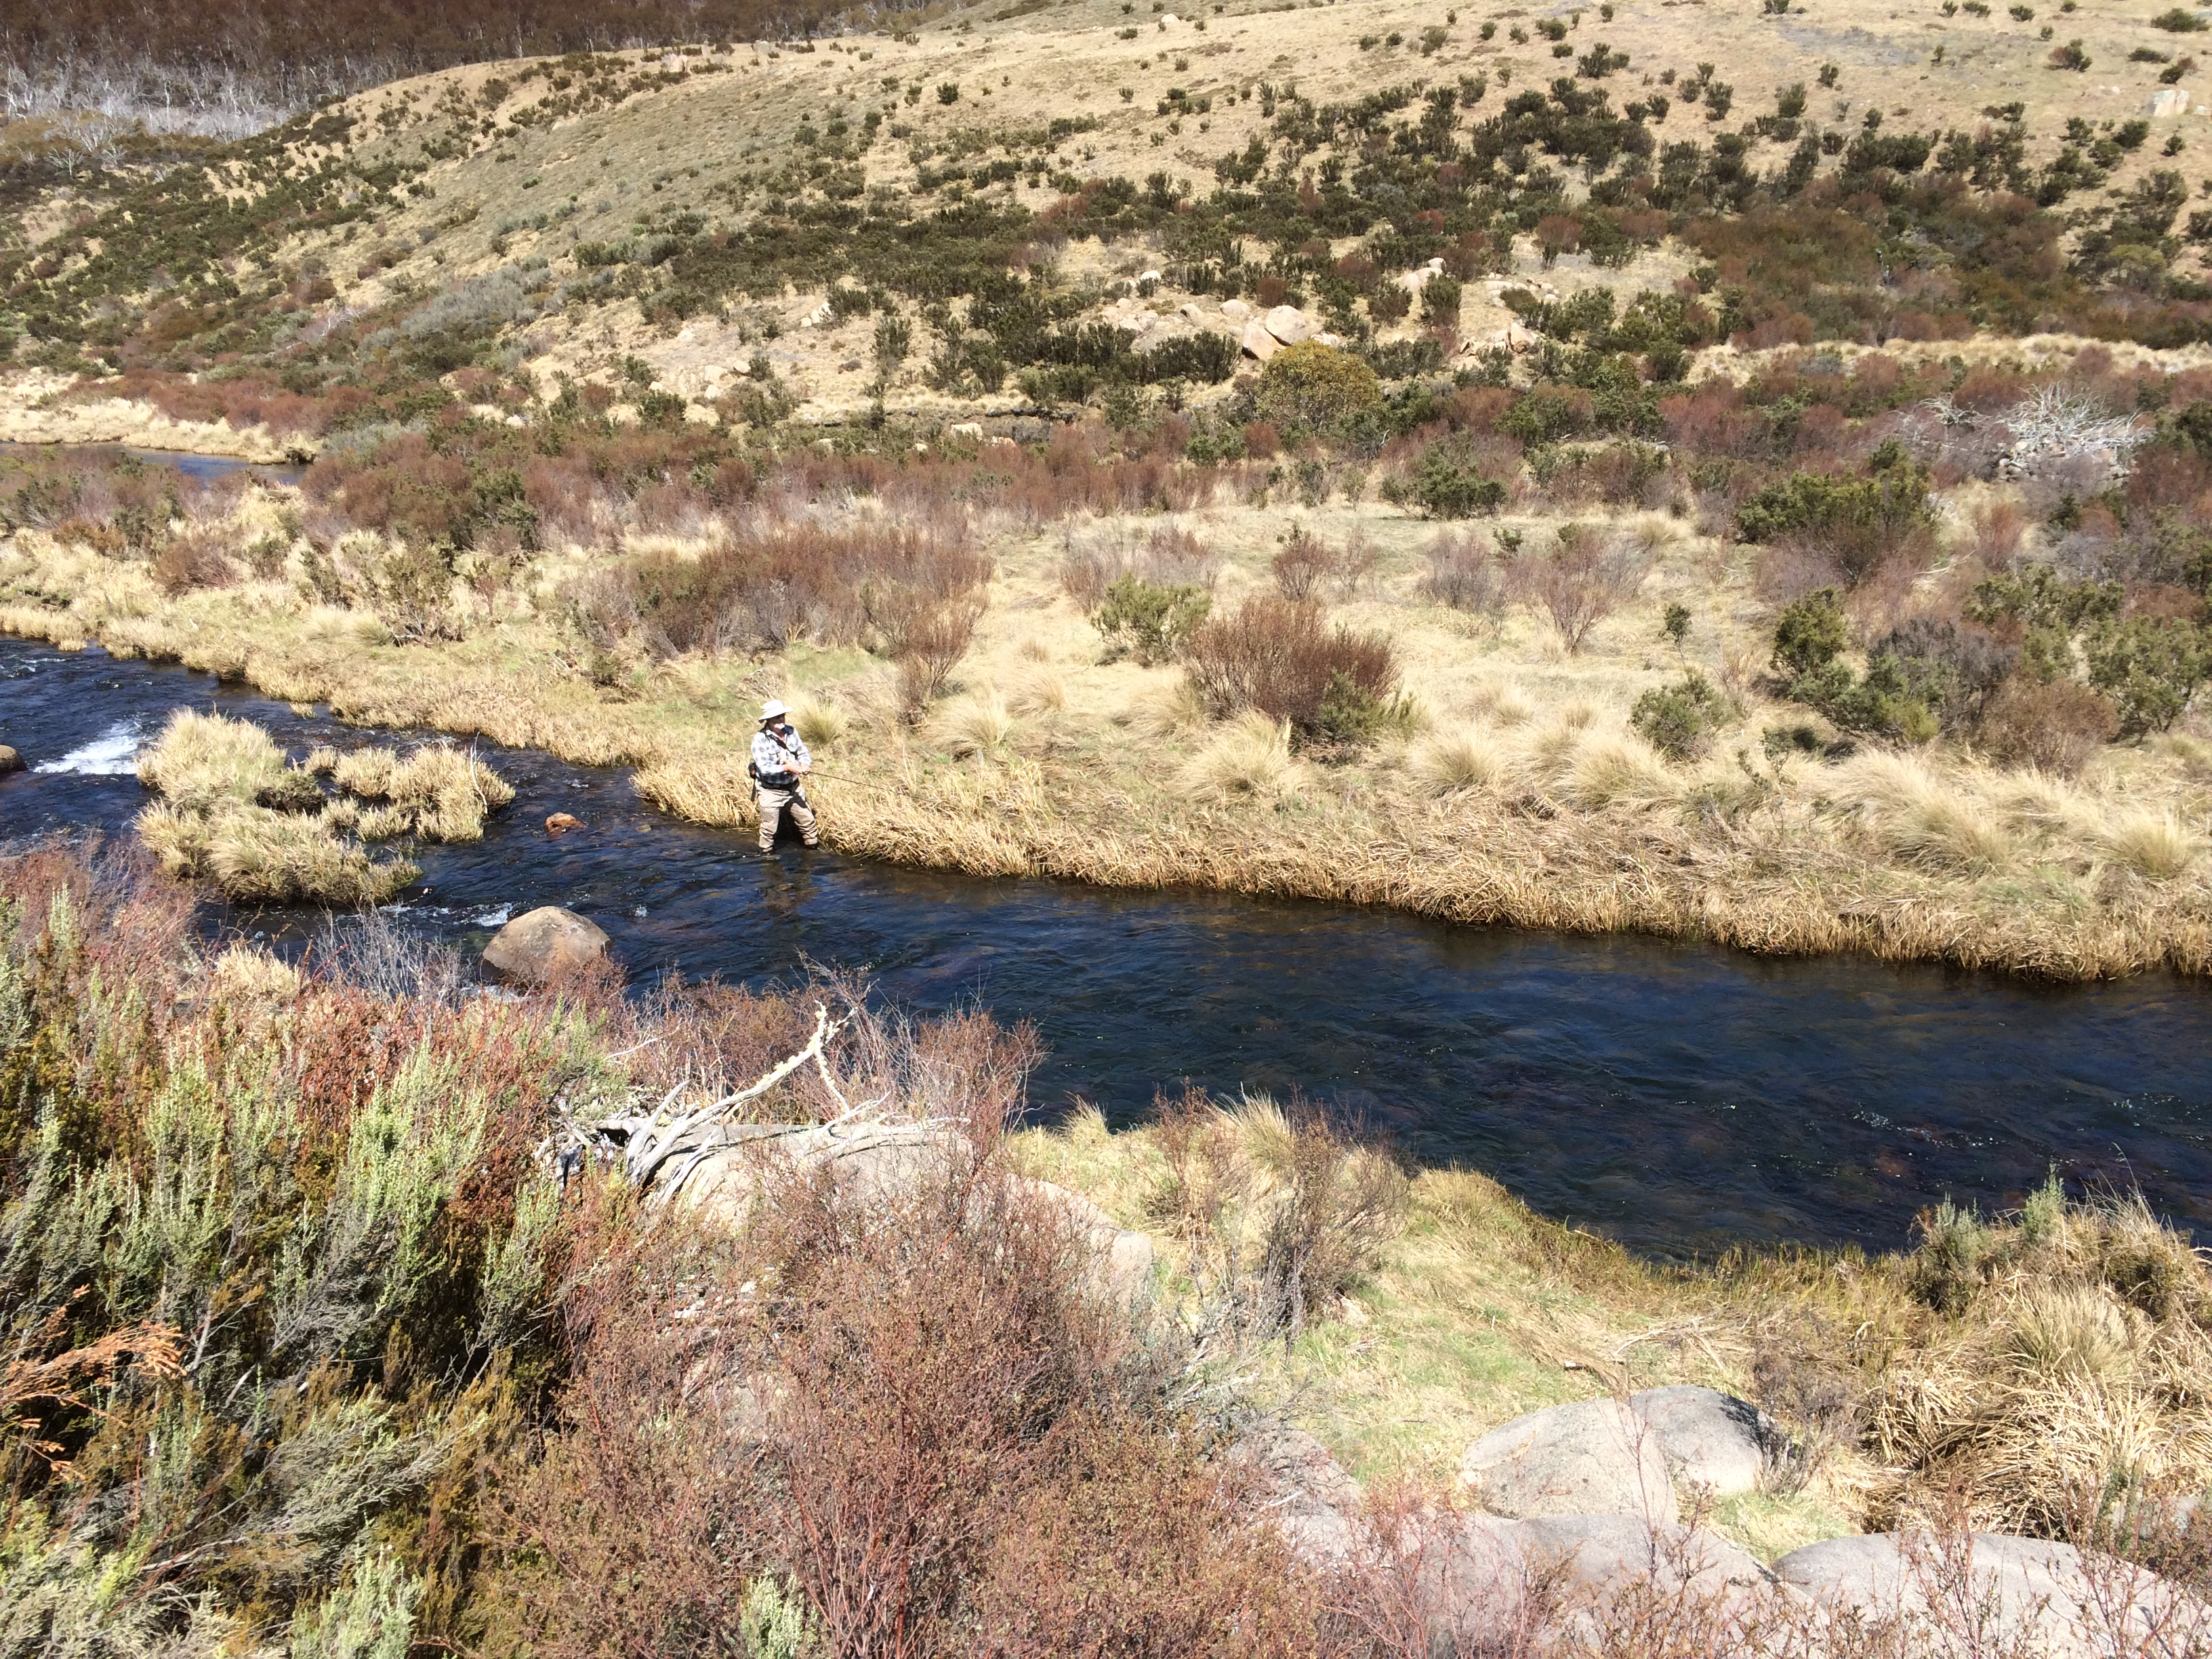 Eucumbene river in the NSW Snowy Mountains